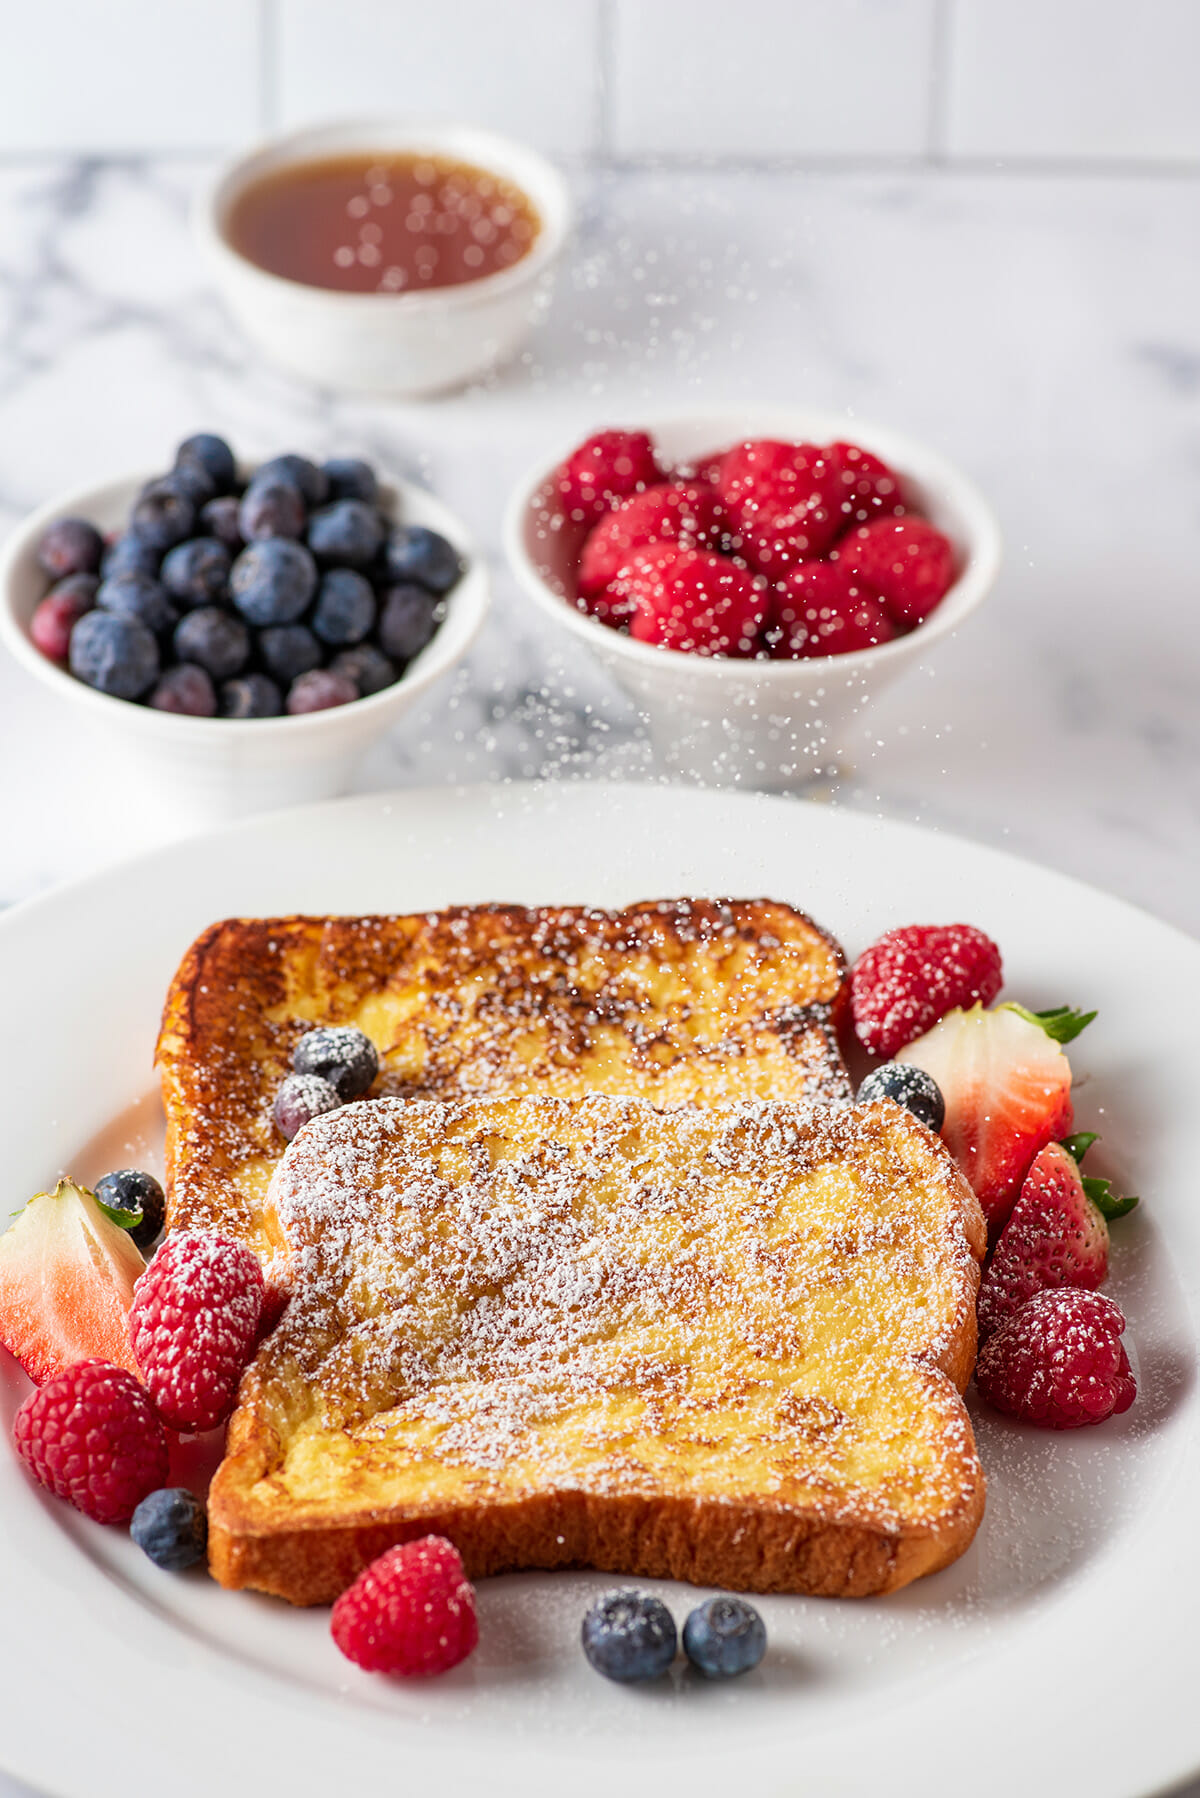 Homemade French toast with berries and powdered sugar.